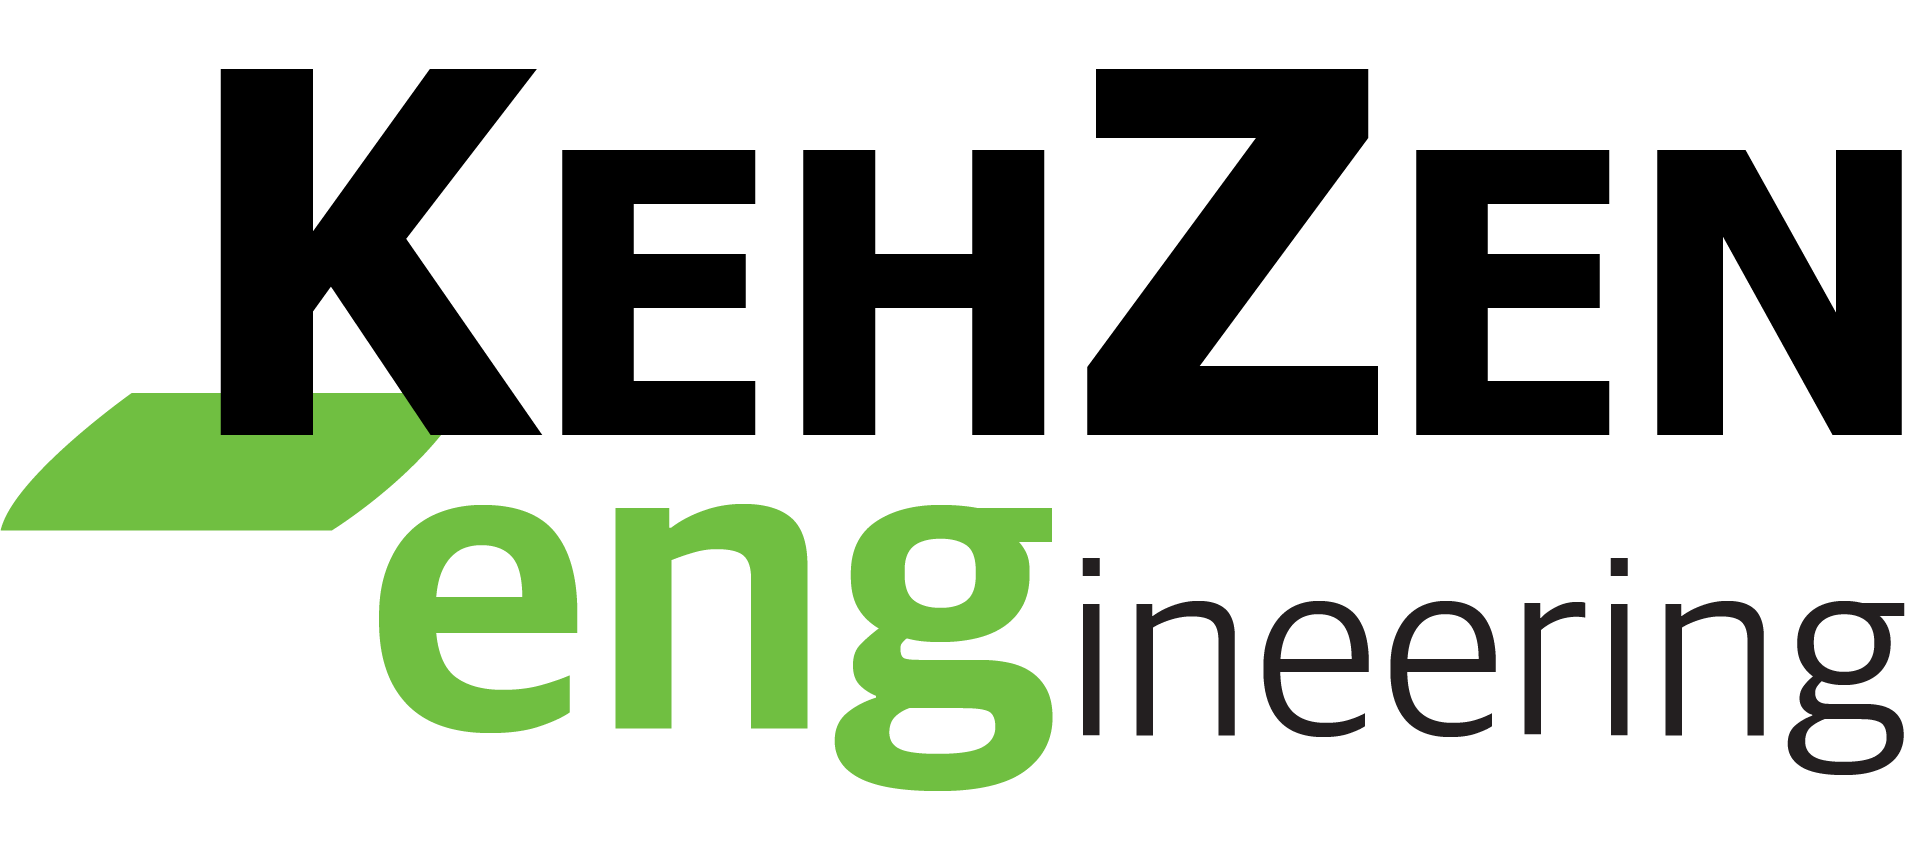 Kehzen Engineering